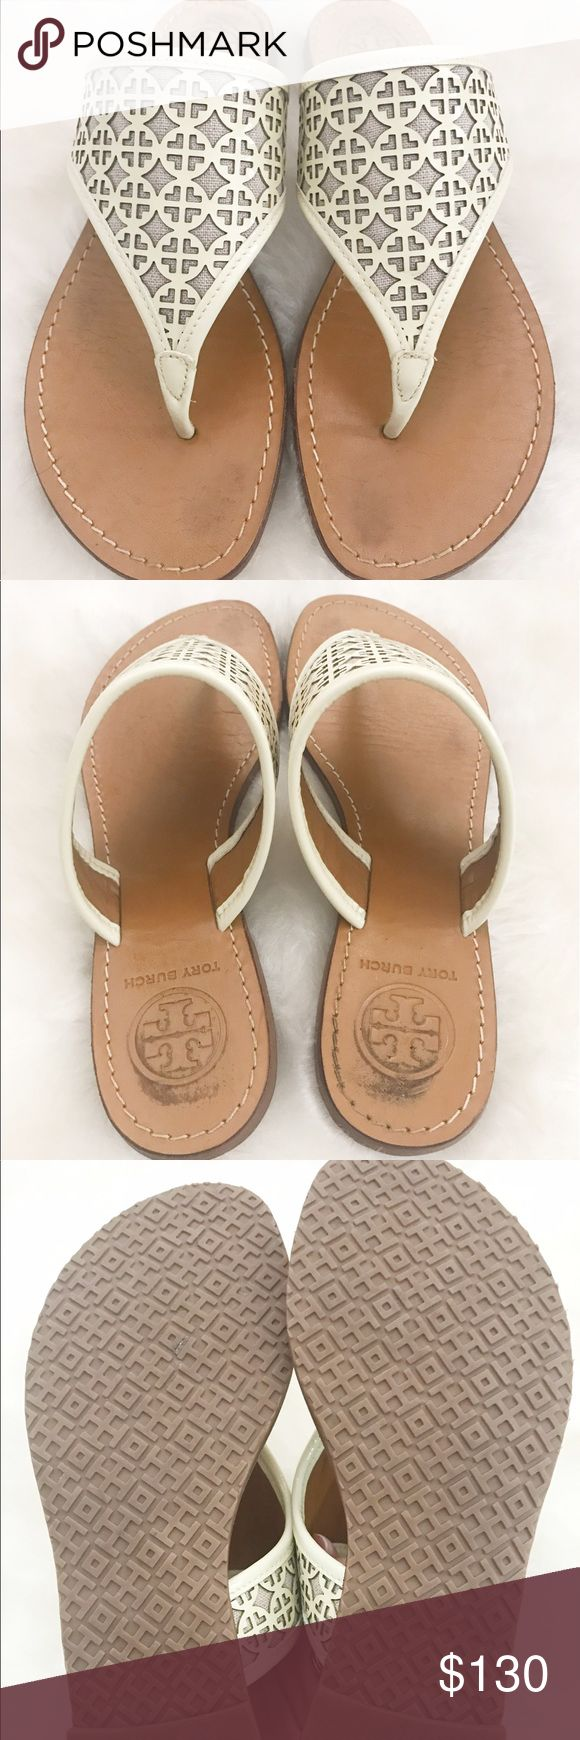 Tory Burch Fret Logo Ivory Sandals Size 7 These are a pair of gently worn Tory Burch Fret perforated Thong sandals! There is a little wear on foot bed of sandals. Ivory in color 😃 size 7 Tory Burch Shoes Sandals